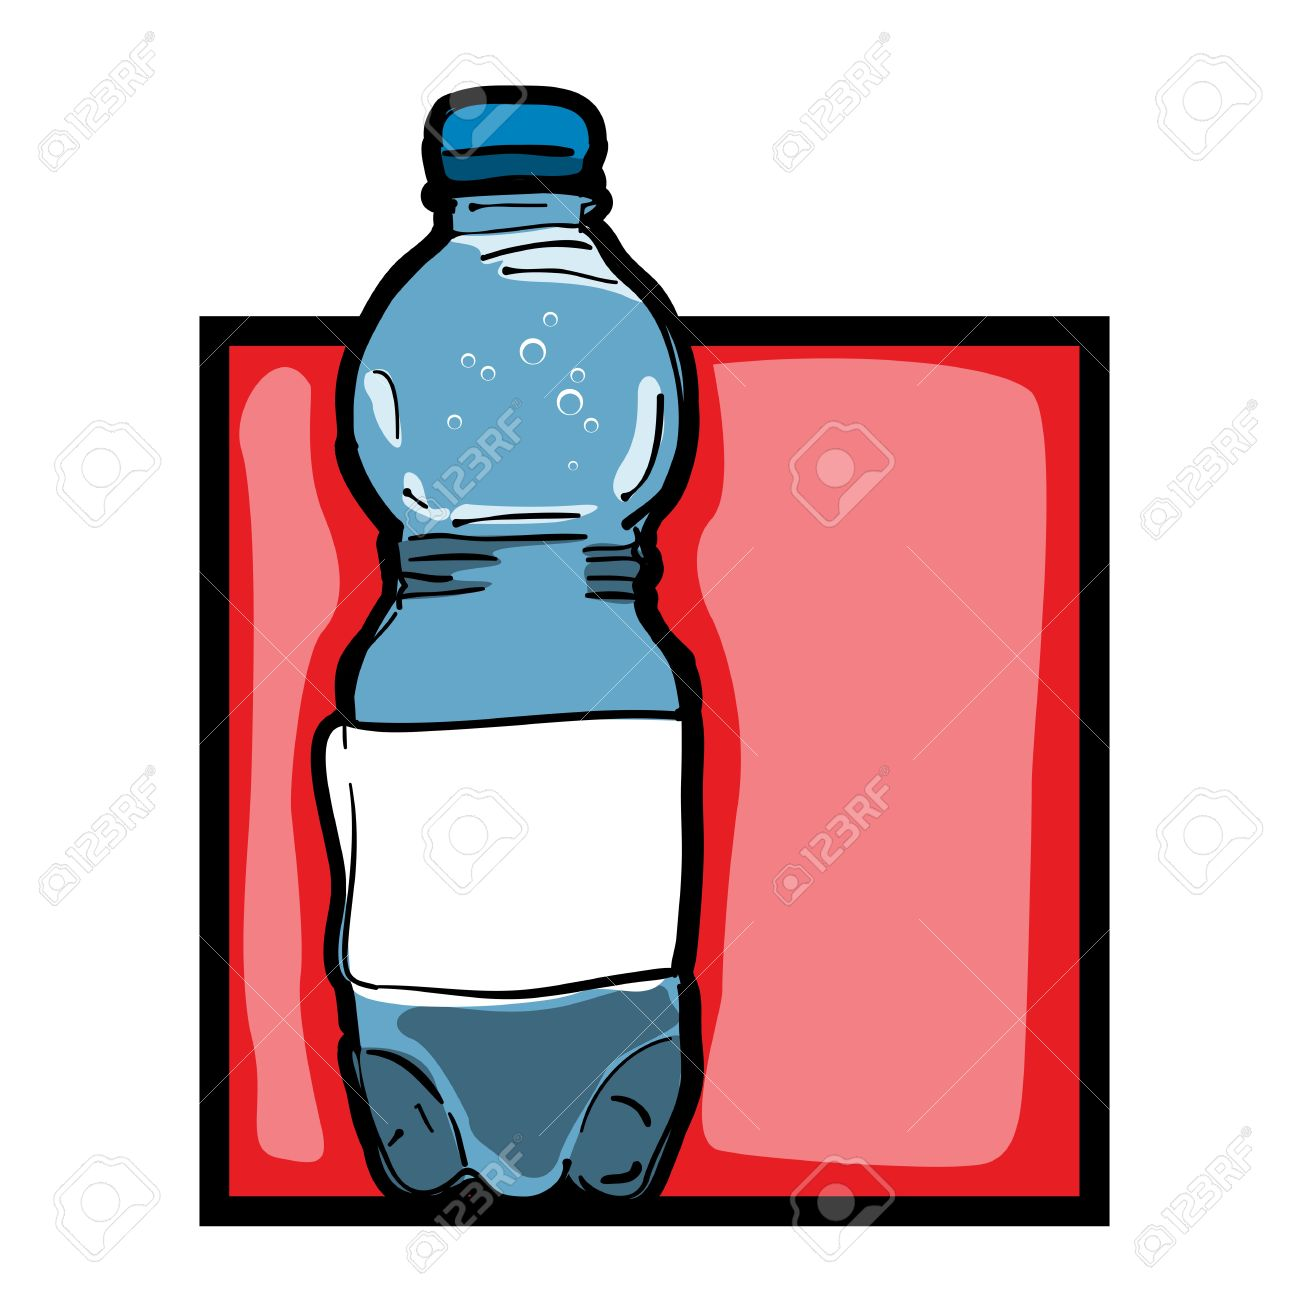 classic clip art graphic icon with mineral water bottle royalty free rh 123rf com Ensure Bottle Cold Bottle